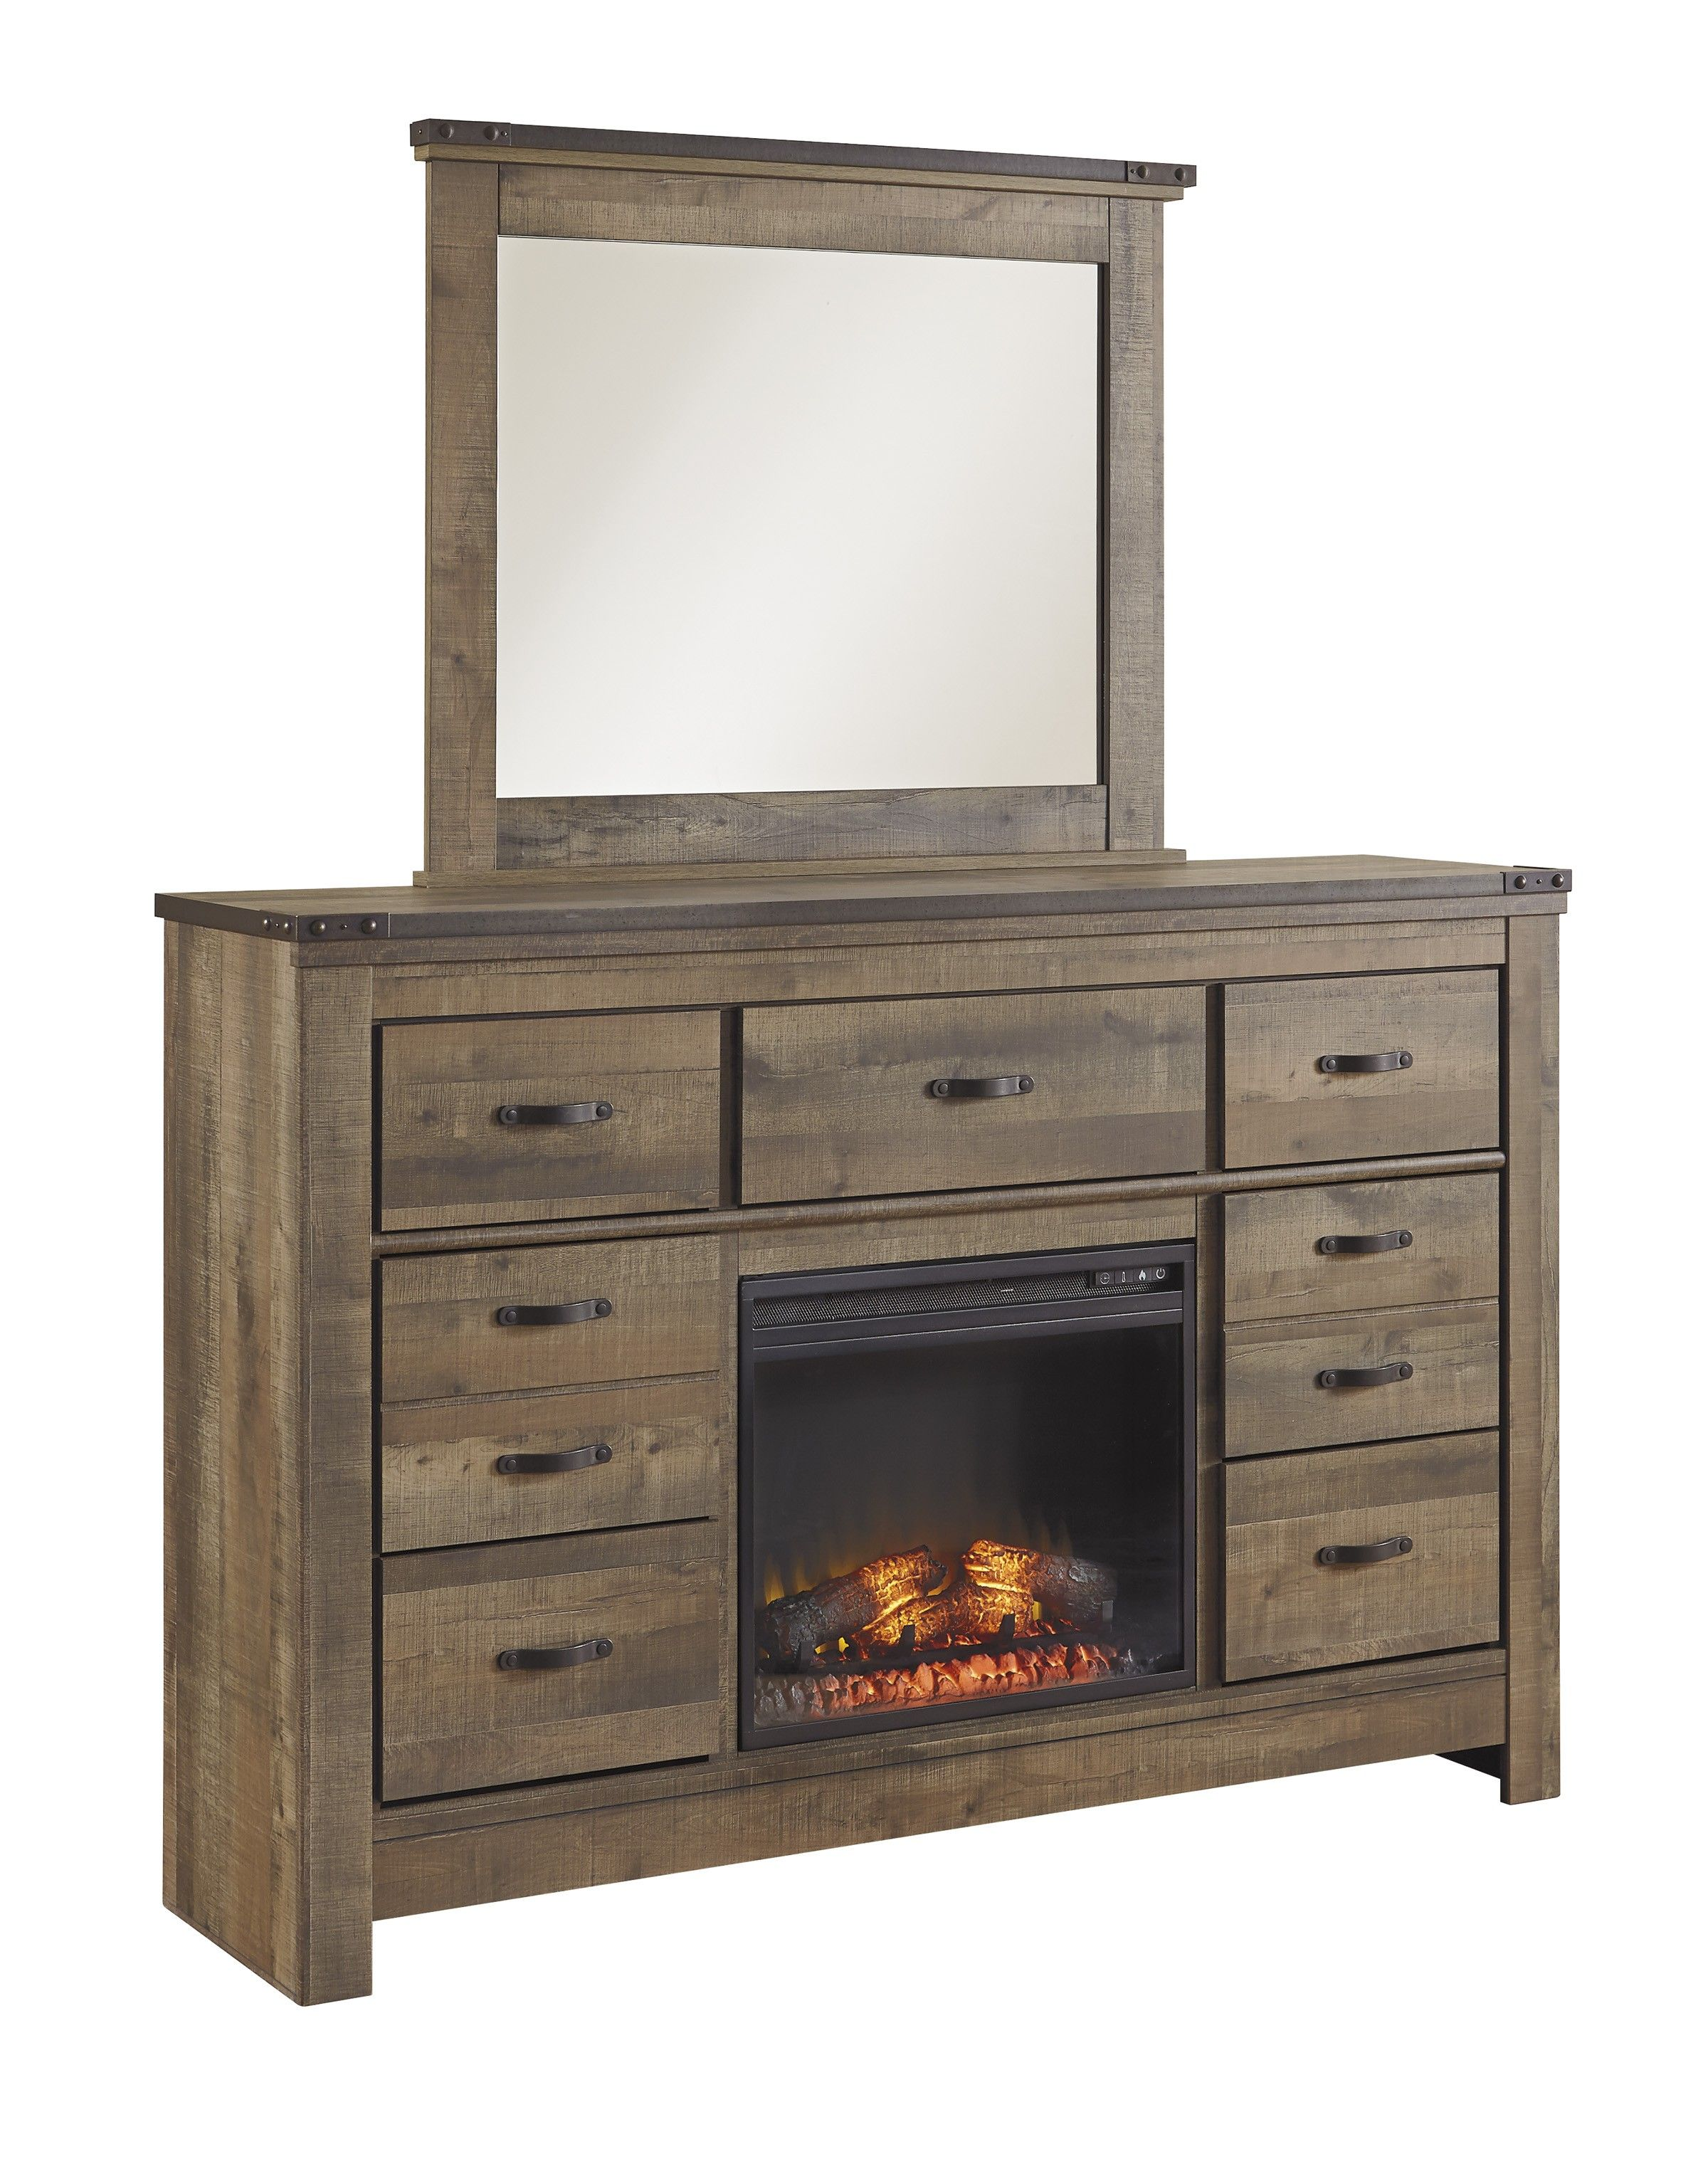 trinell brown dresser with fireplace option dresser dream